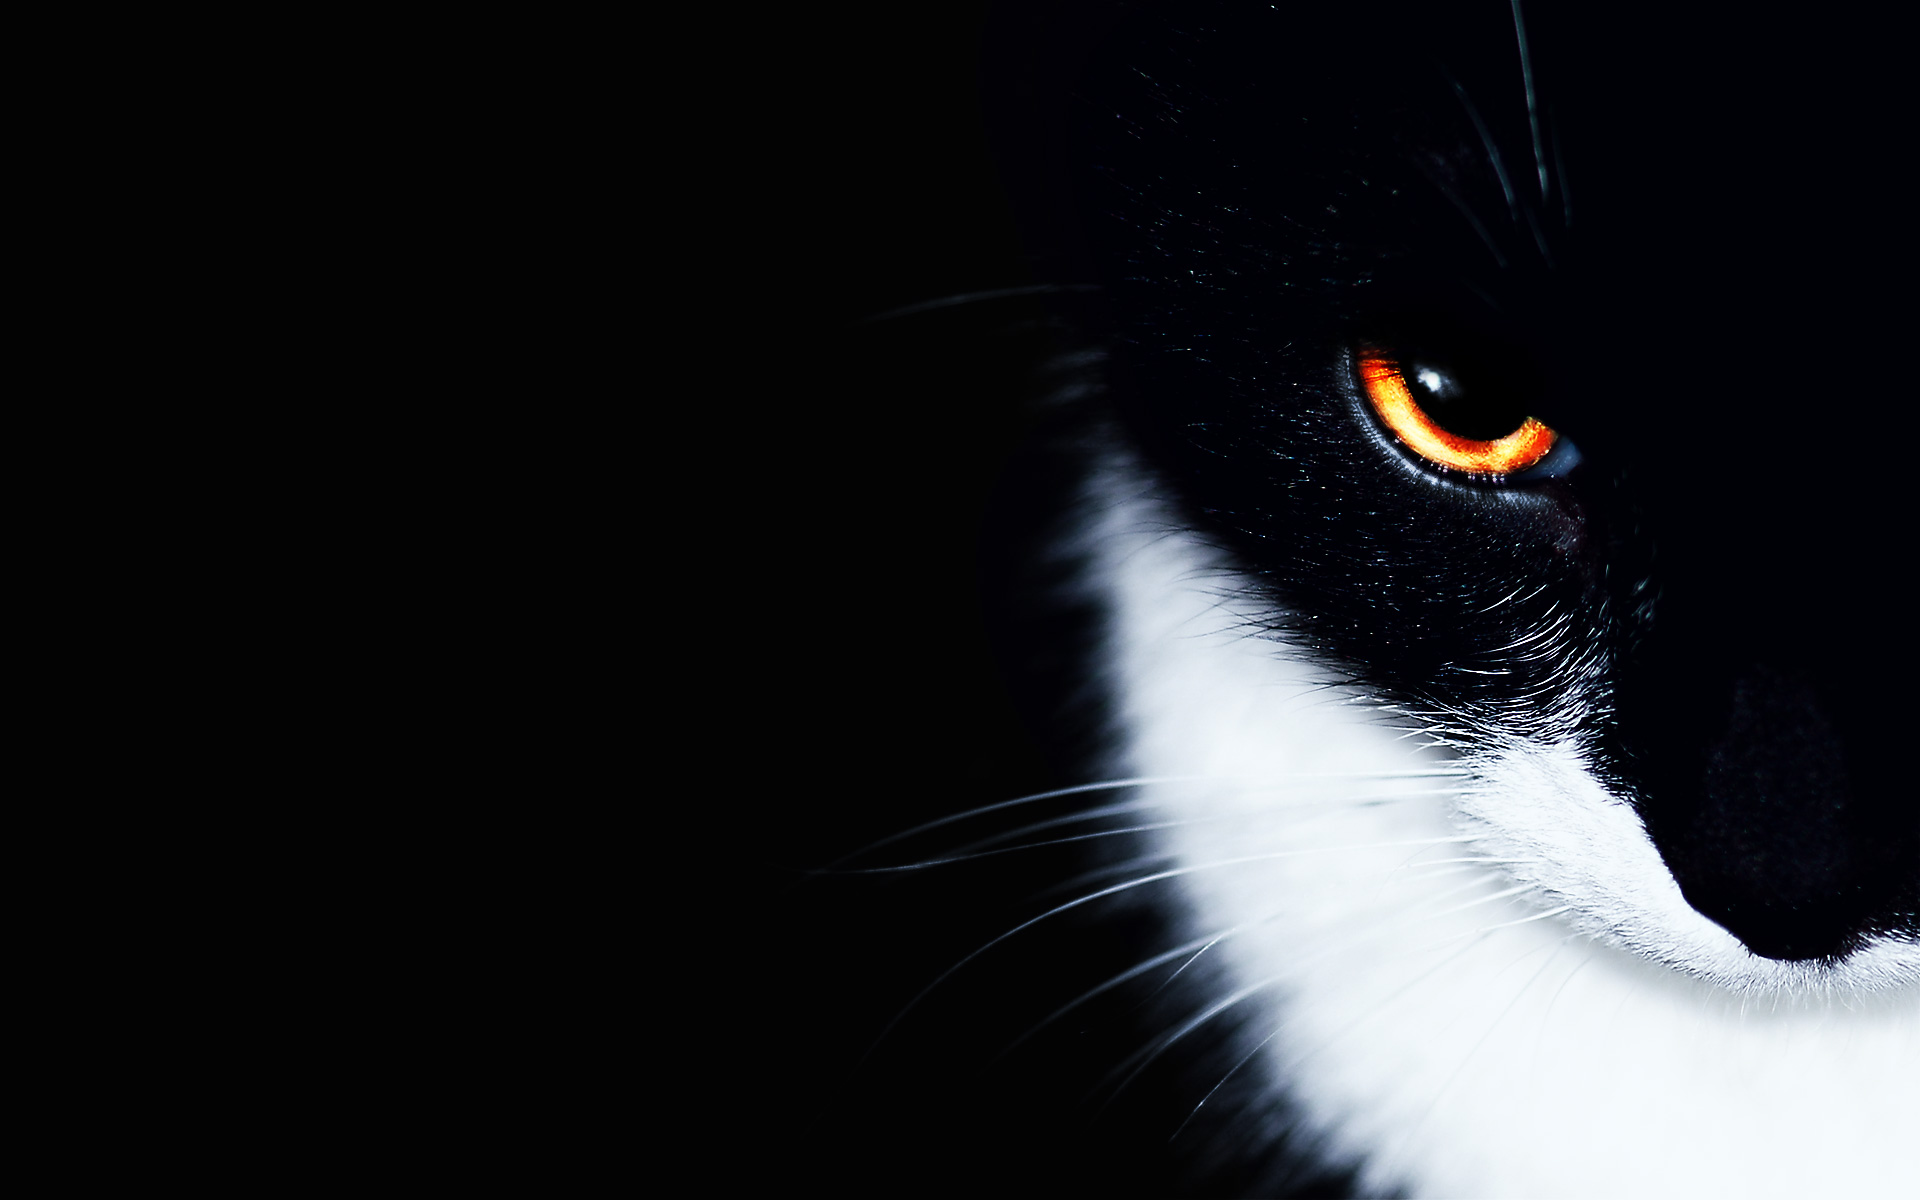 Beautiful Eye Cat Wallpaper Background Wallpaper with 1920x1200 1920x1200